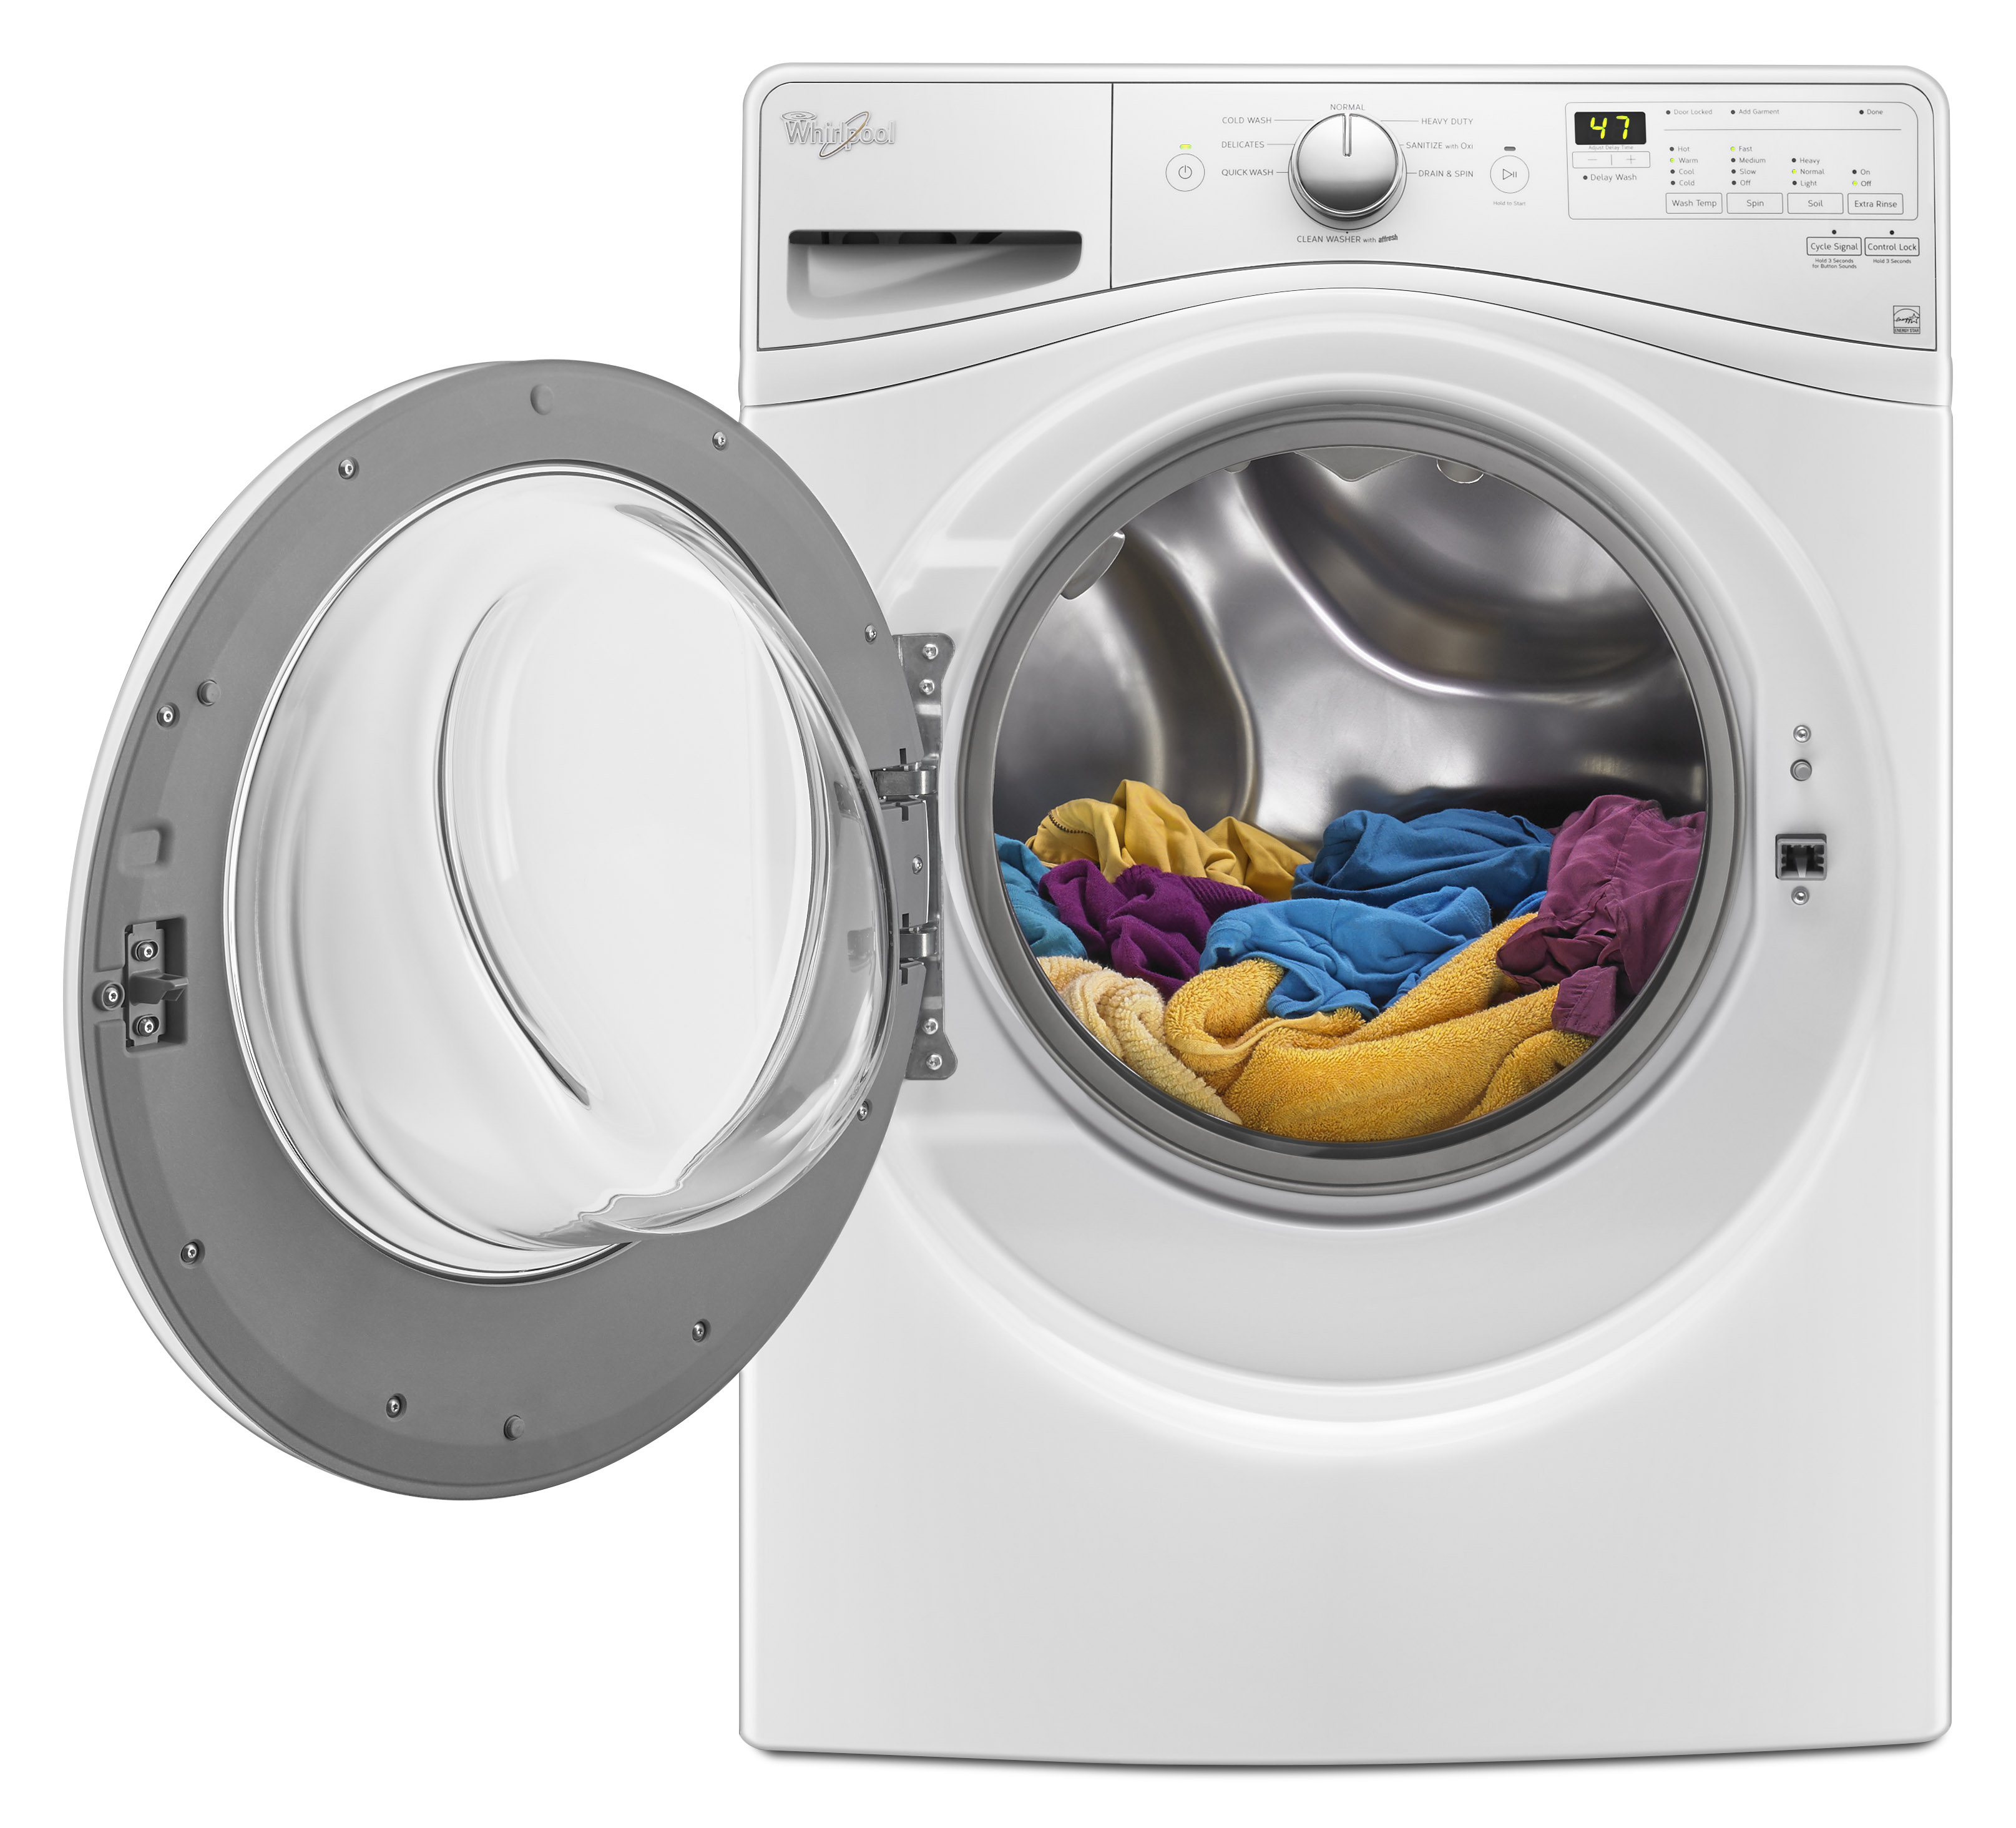 Whirlpool WFW7590FW 4.2 cu. ft. Front Load Washer w/ Closet-Depth Fit - White